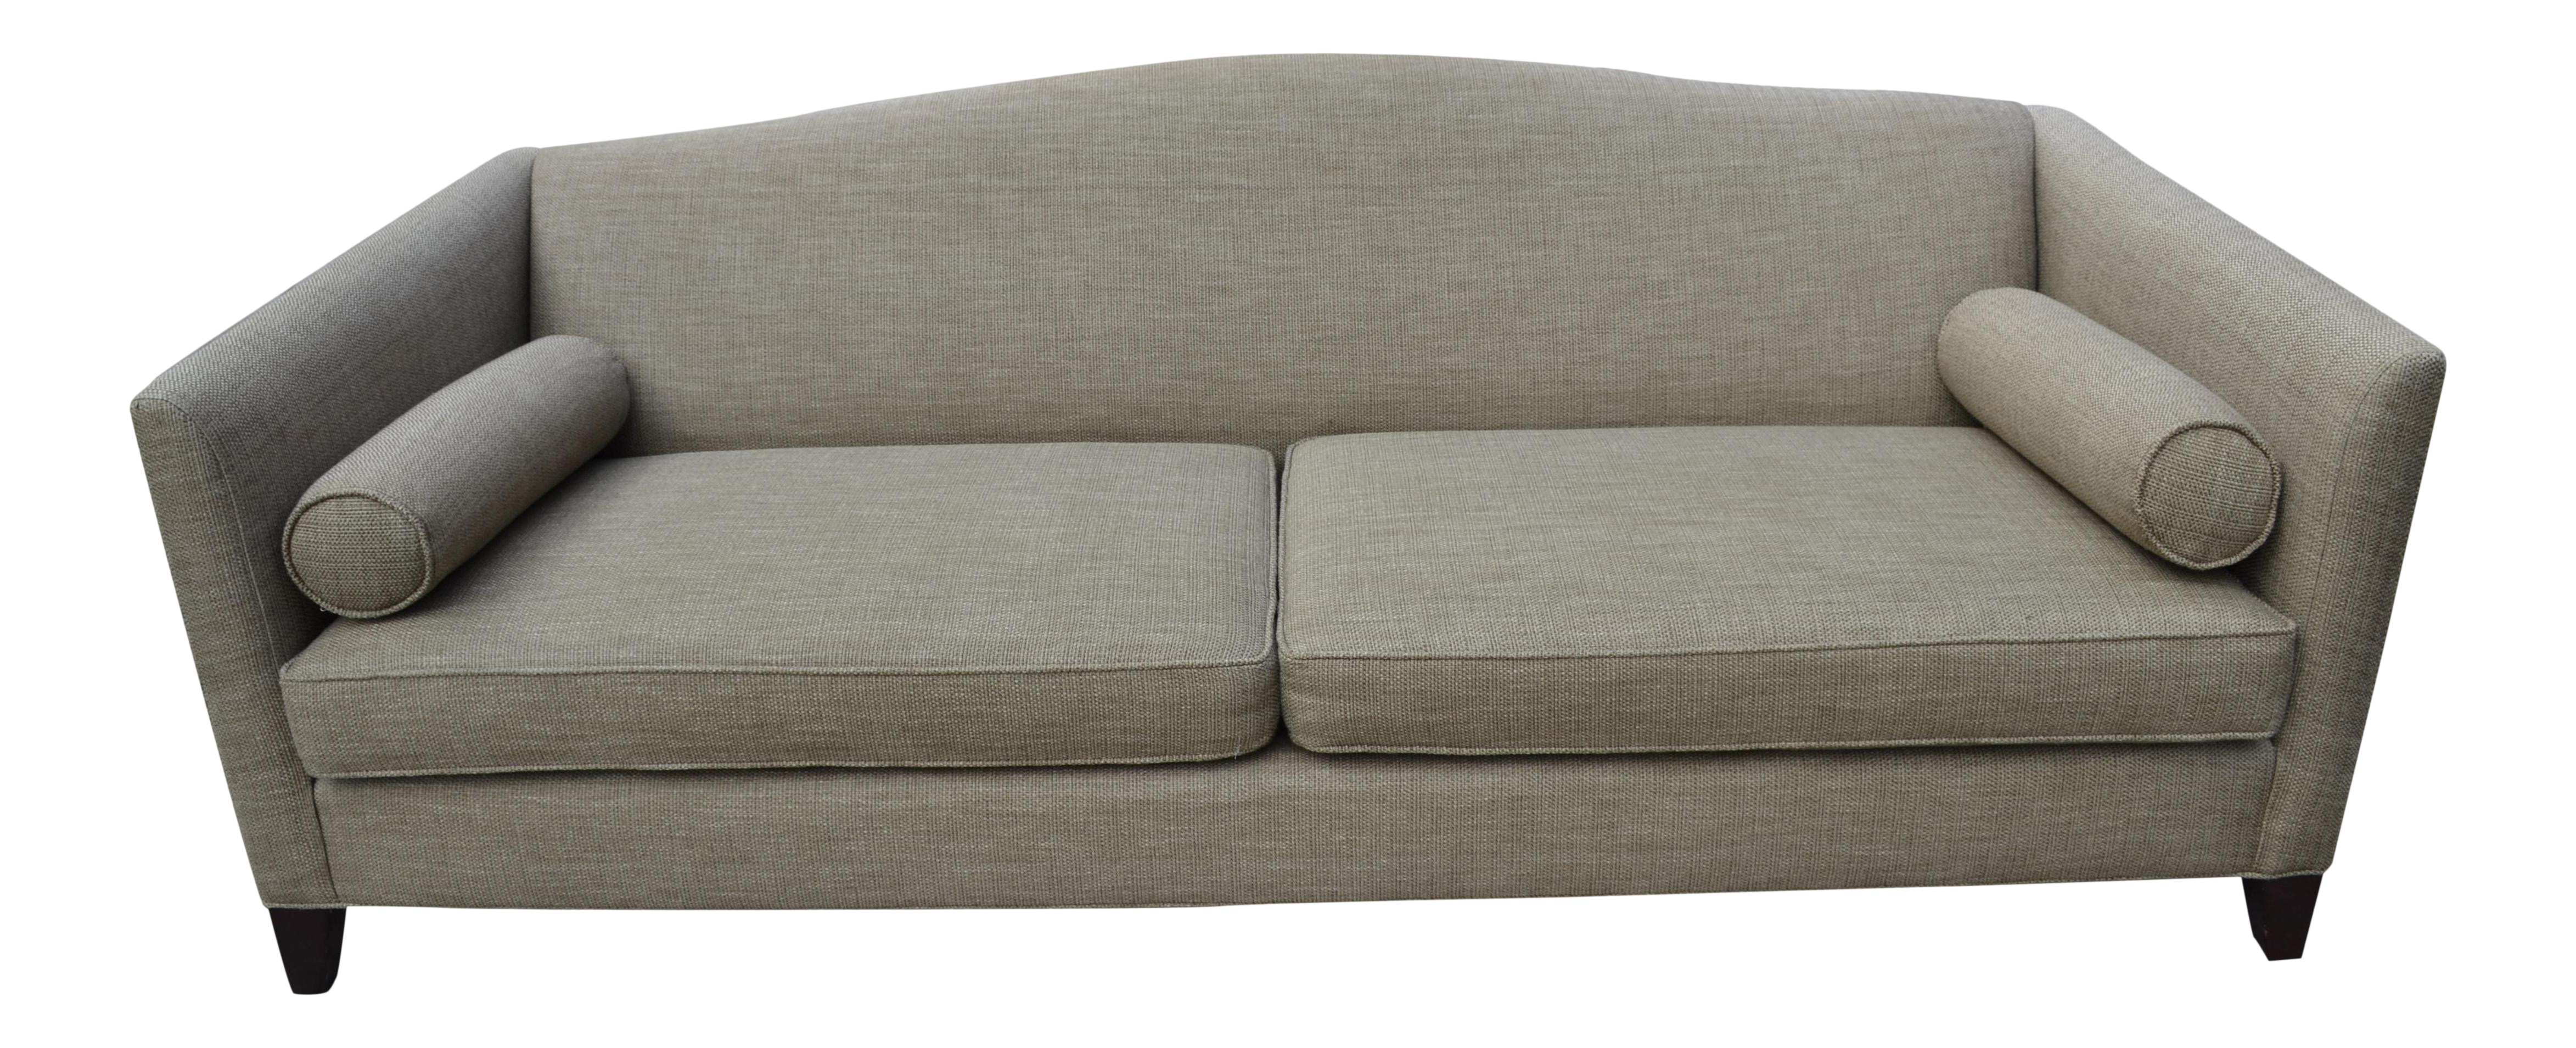 Back of couch png. Mitchell gold bob williams